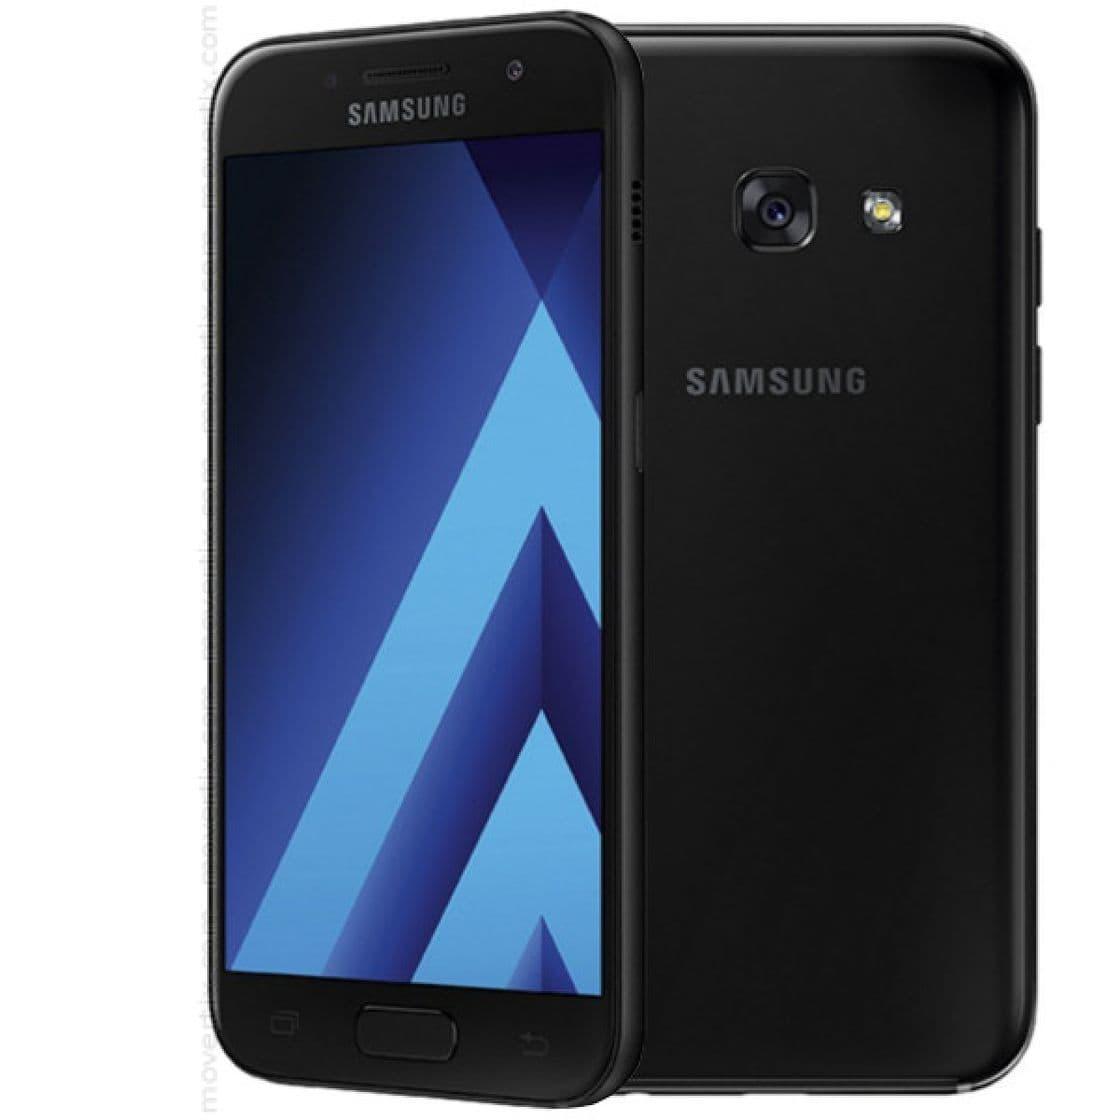 samsung galaxy a3 2017 buy smartphone compare prices in stores samsung galaxy a3 2017. Black Bedroom Furniture Sets. Home Design Ideas